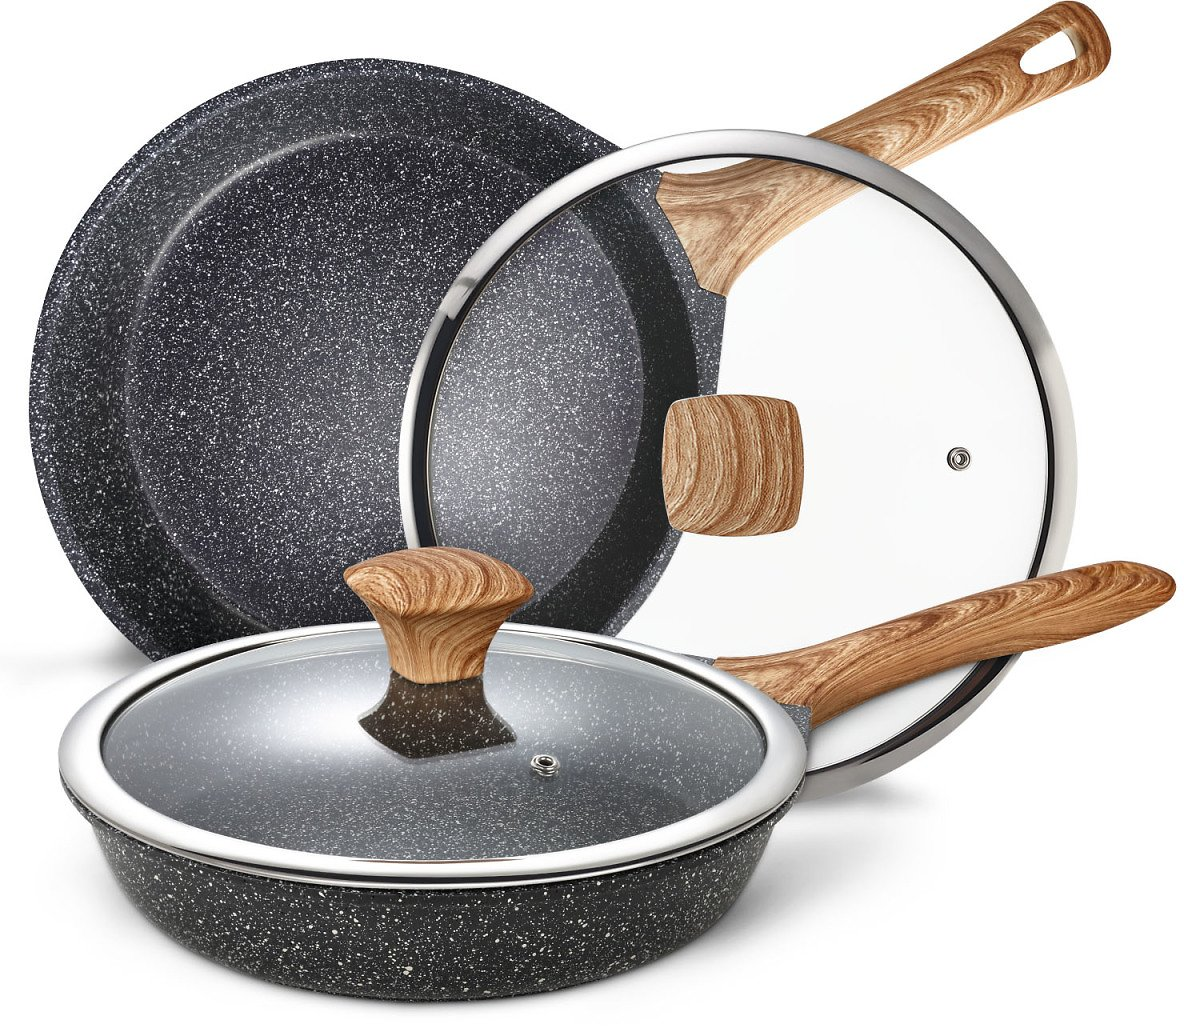 Miusco Nonstick Frying Pan Set with Lid, Natural Granite Stone Coating Cookware Set, 10-inch and 12-inch Pots, Black